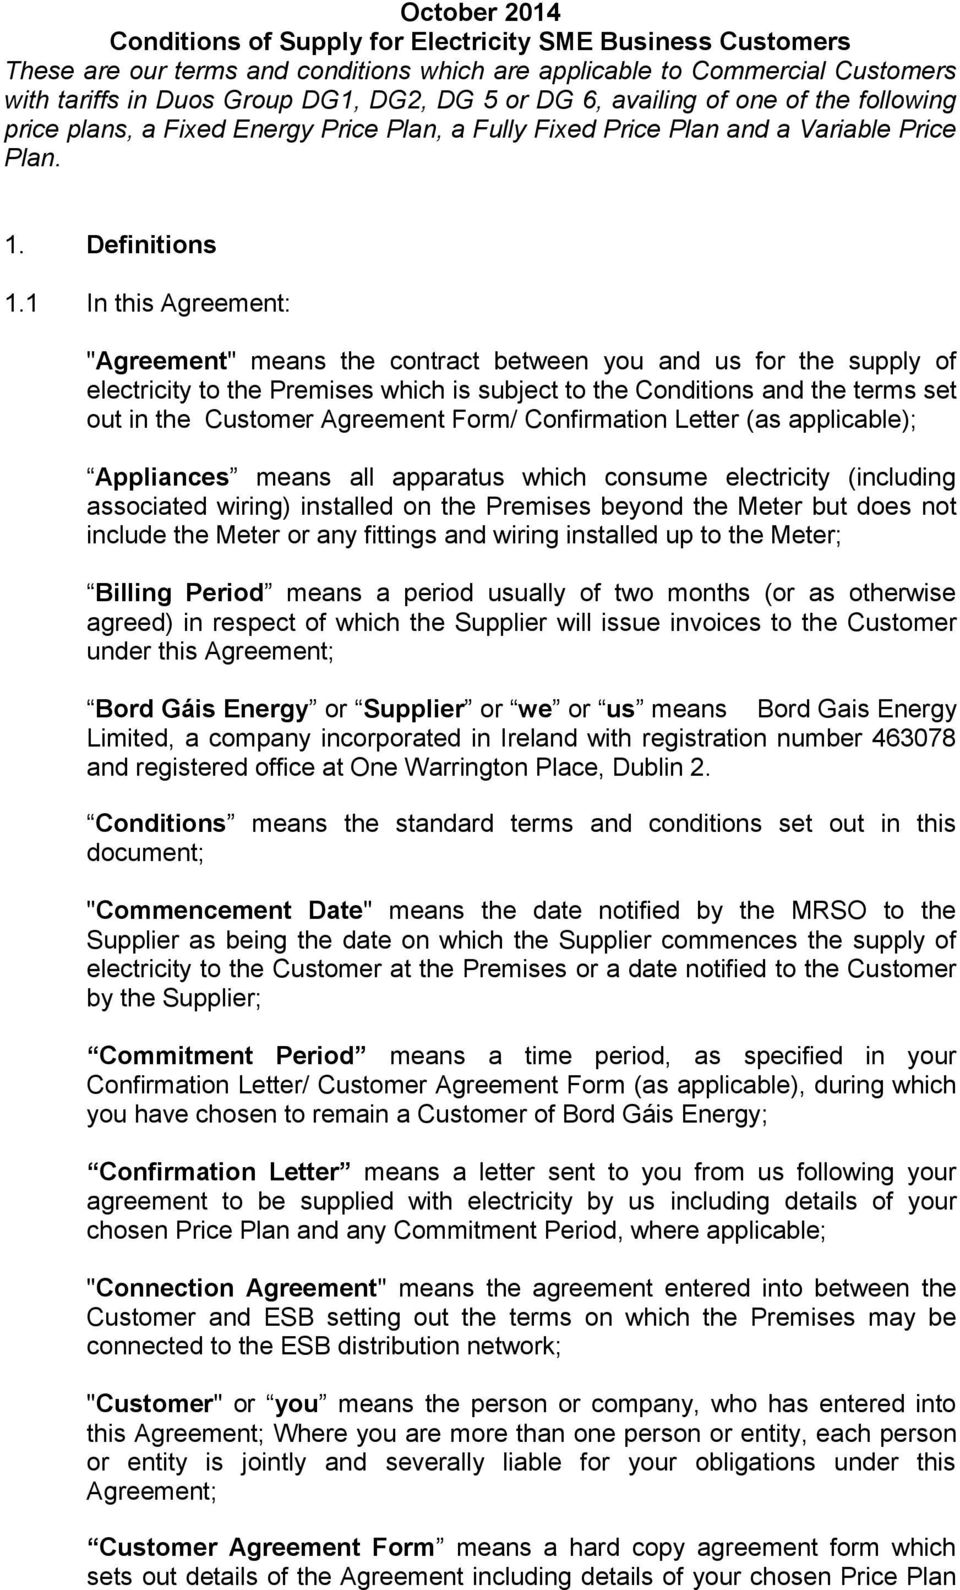 Customer Agreement Form Means A Hard Copy Agreement Form